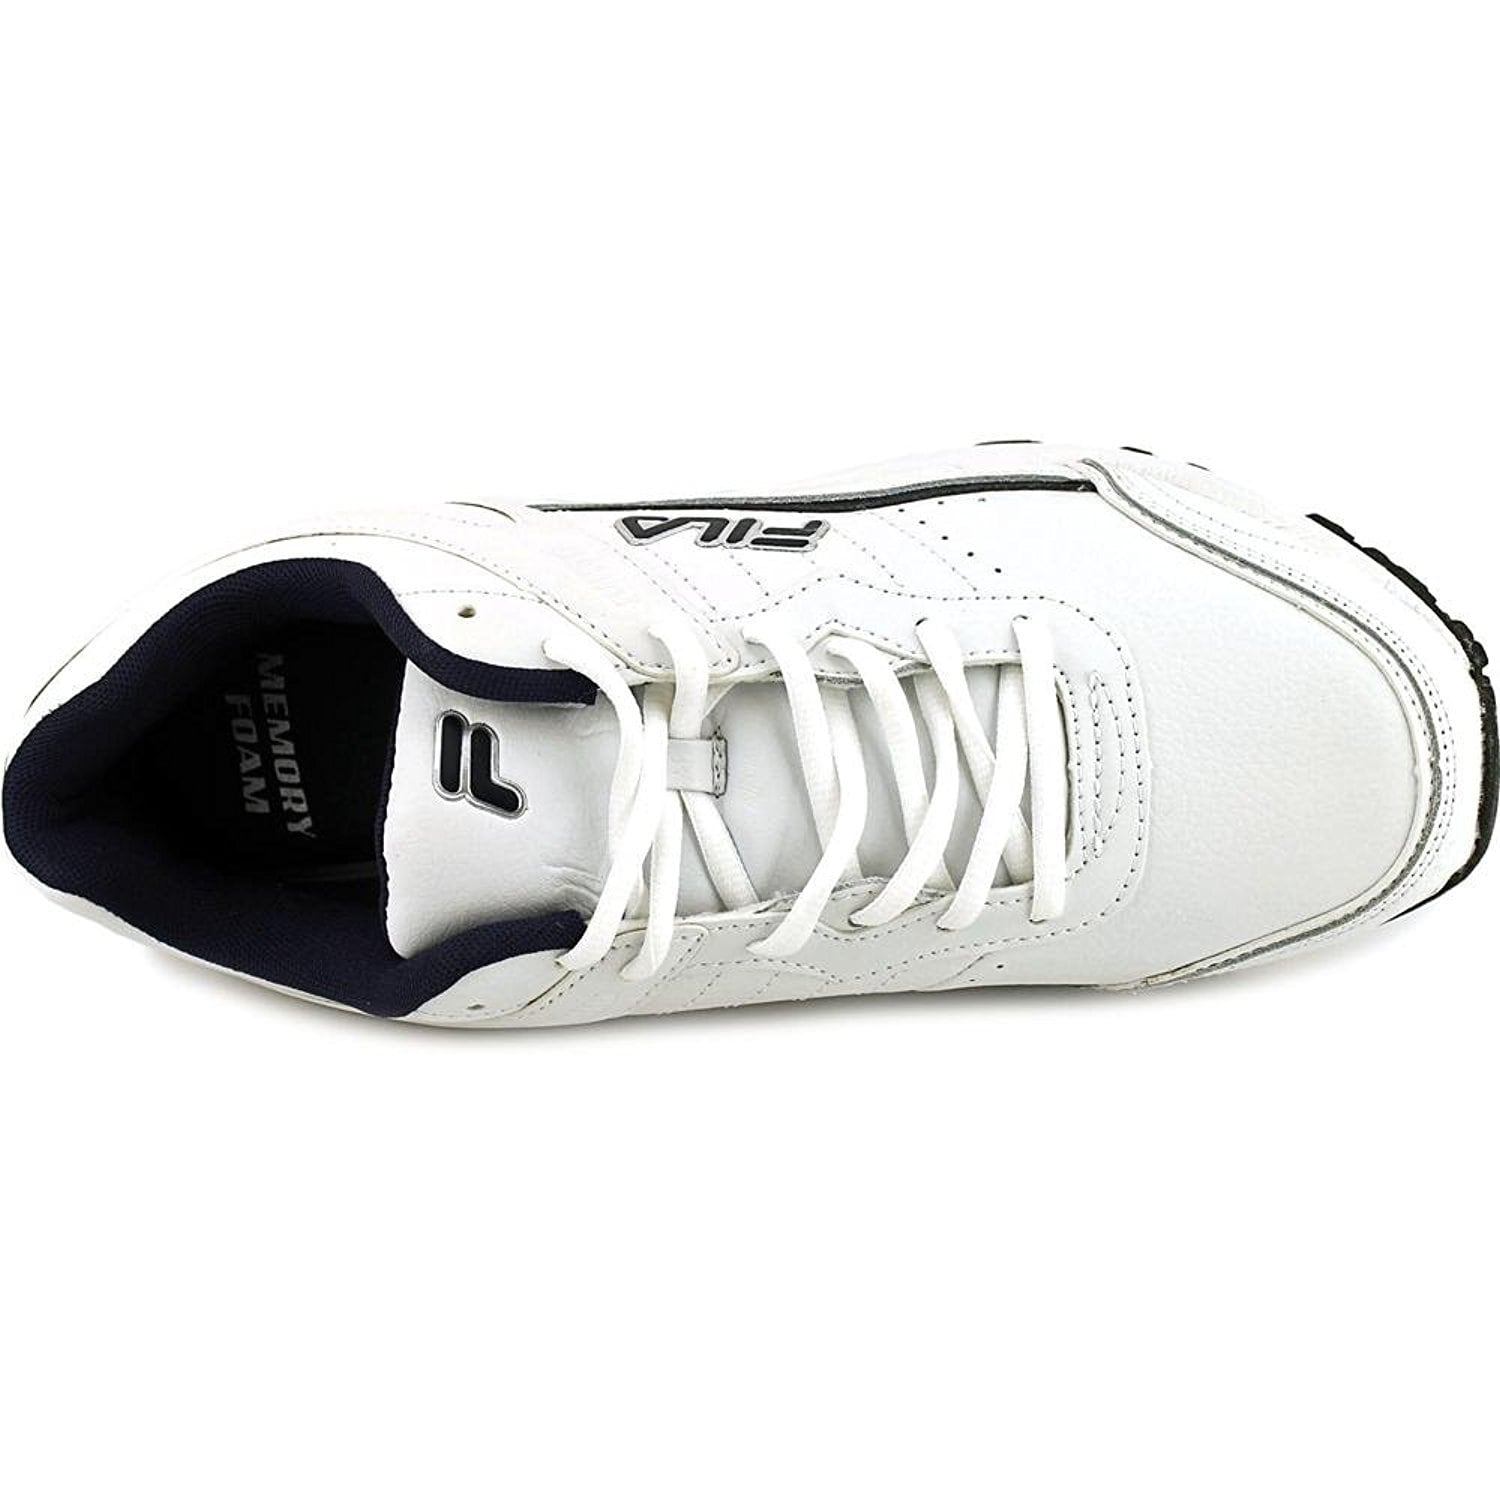 420f6c6bacc1 Shop Fila Men s Memory Sportland Running Shoe - Free Shipping On Orders  Over  45 - Overstock.com - 18424972